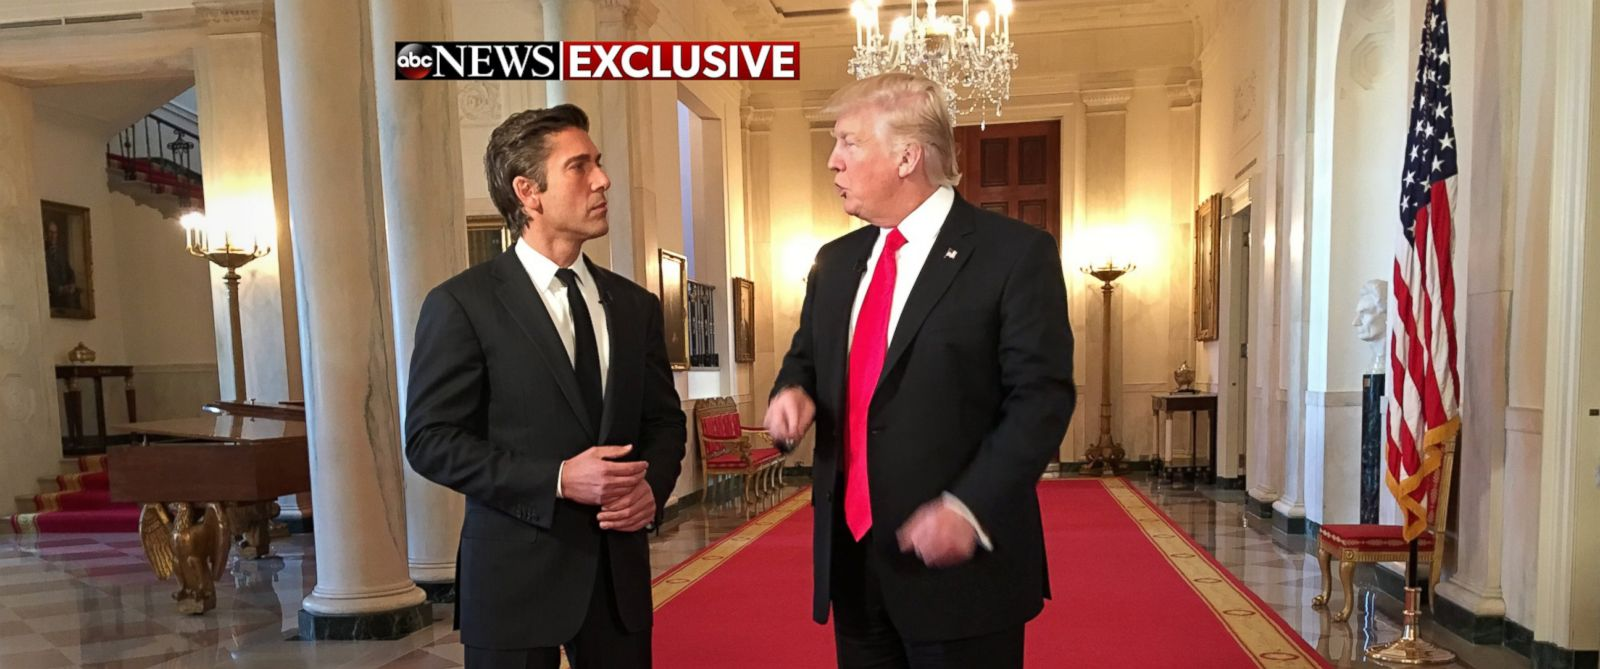 PHOTO: President Donald Trump shows ABCs David Muir around the White House following his first interview as president, Jan. 25, 2017.